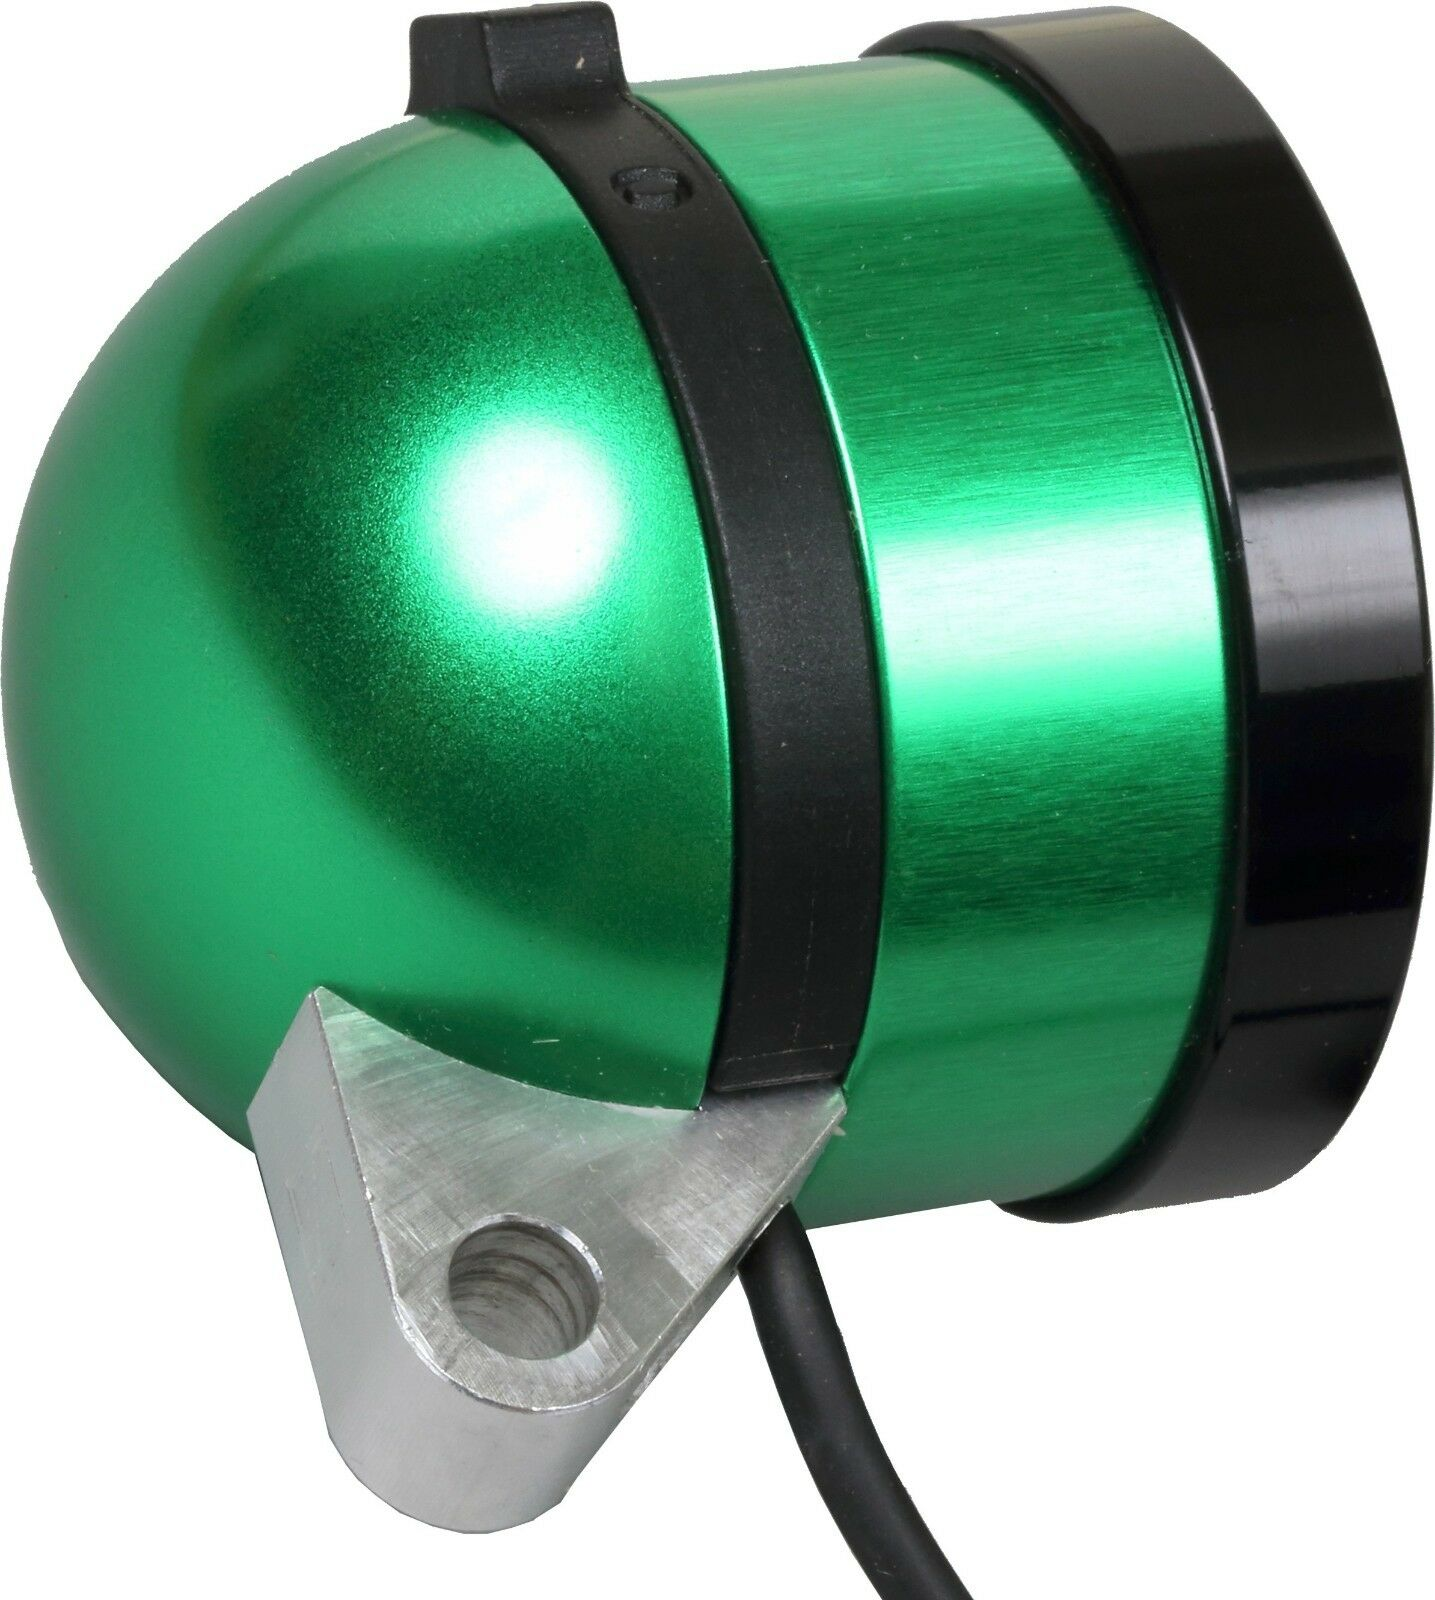 Novelty Led Headlight Son Edelux II Light Green with 55 1 8in Cabel